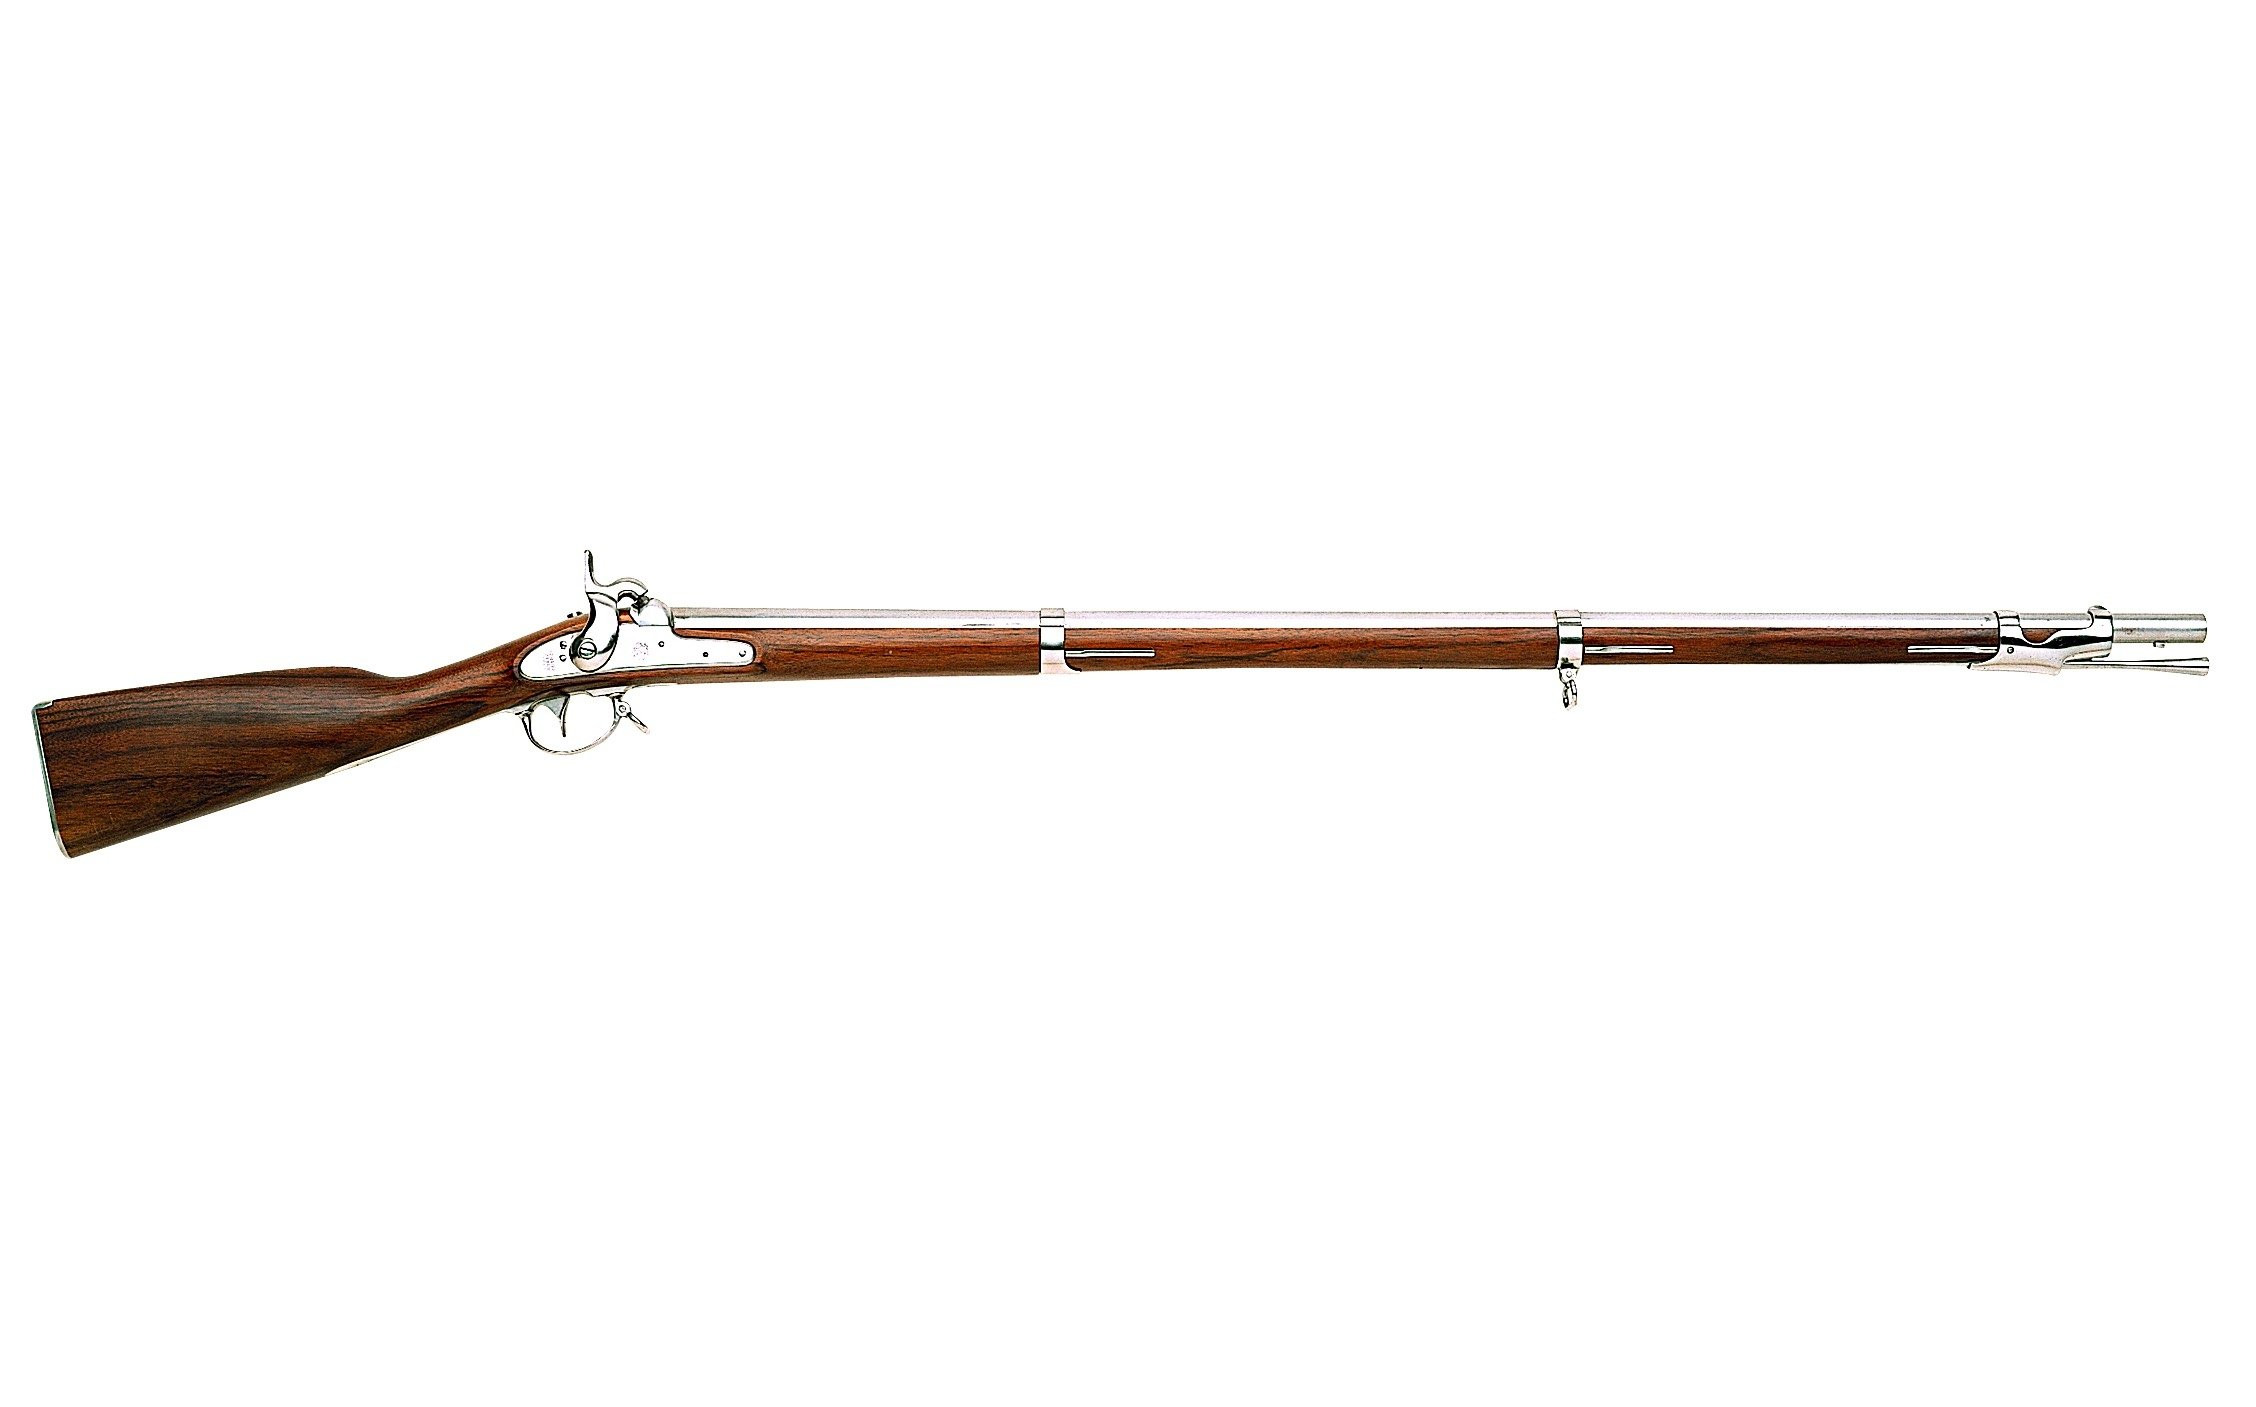 Traditions 1842 springfield musket build it yourself kit 69 cal traditions 1842 springfield musket build it yourself kit 69 cal smoothbore 42 barrel solutioingenieria Gallery